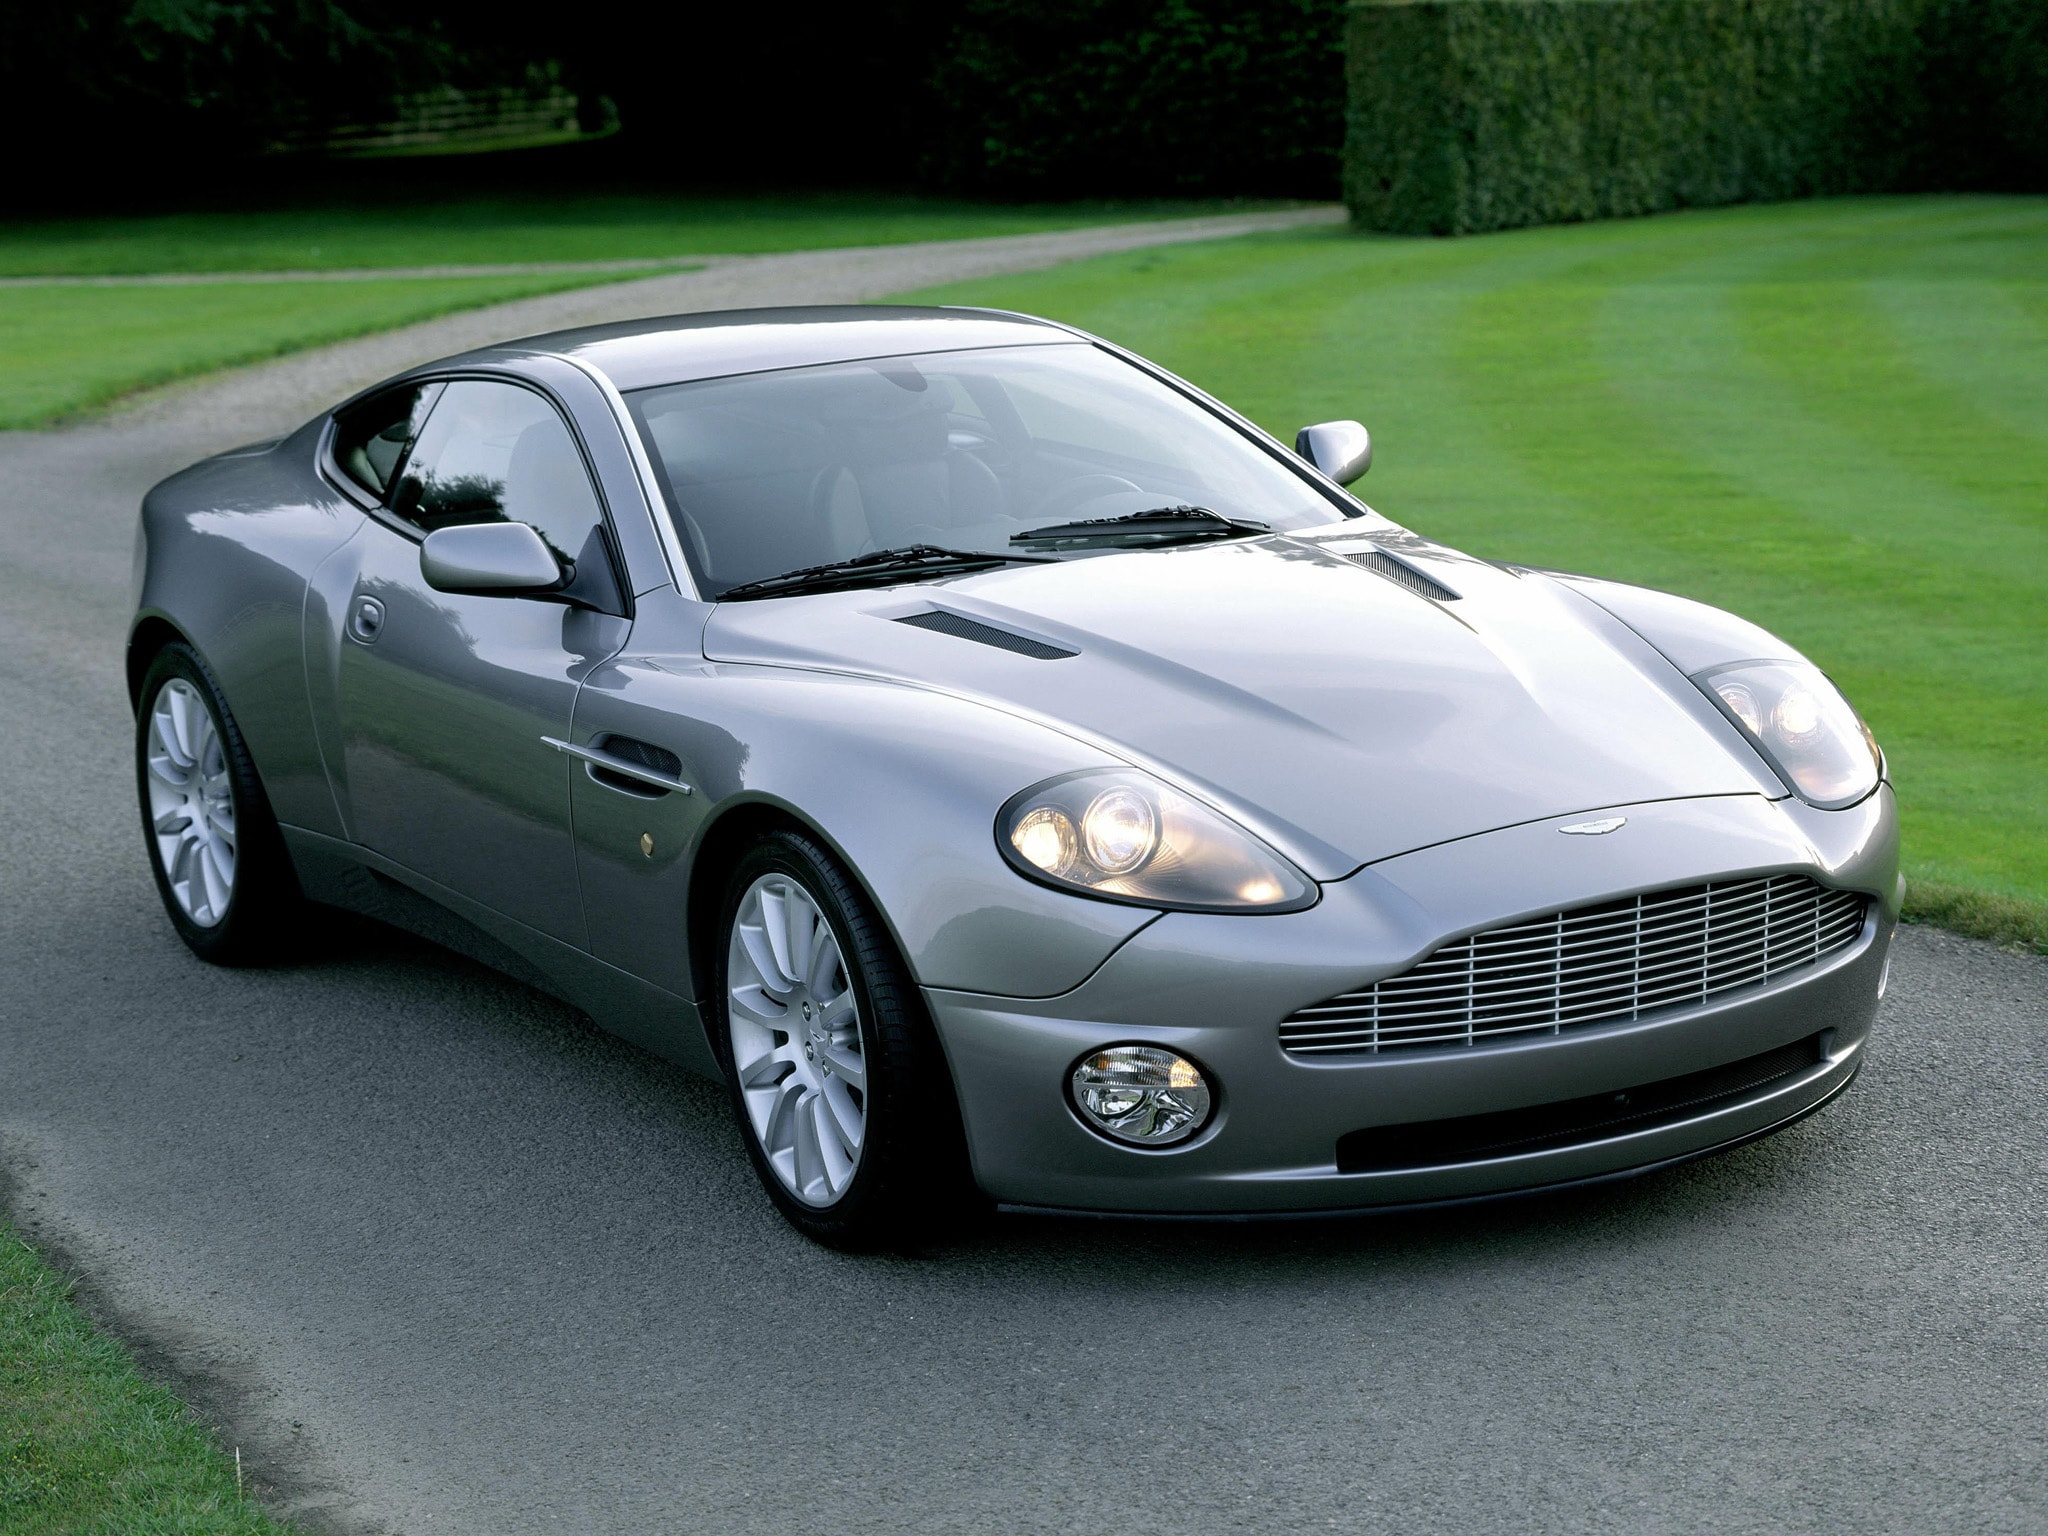 2001 Aston Martin Vanquish widescreen wallpapers